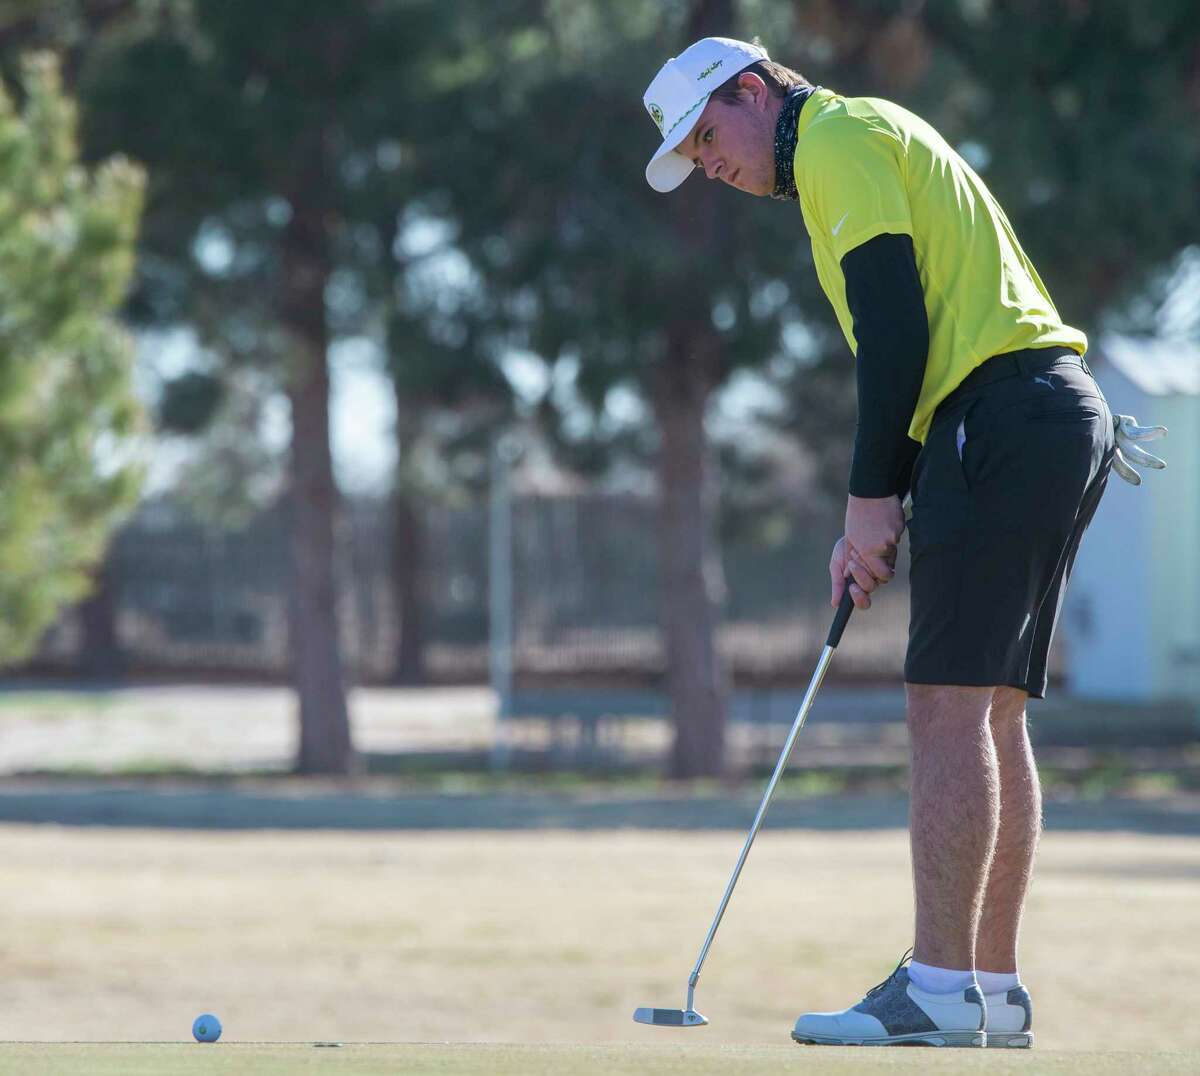 Midland College's Samual McKenzie follows his putt 03/03/2021 during the second day of play in the TankLogix Intercollegiate Golf Tournament at Ranchland Hills Golf Club. Tim Fischer/Reporter-Telegram